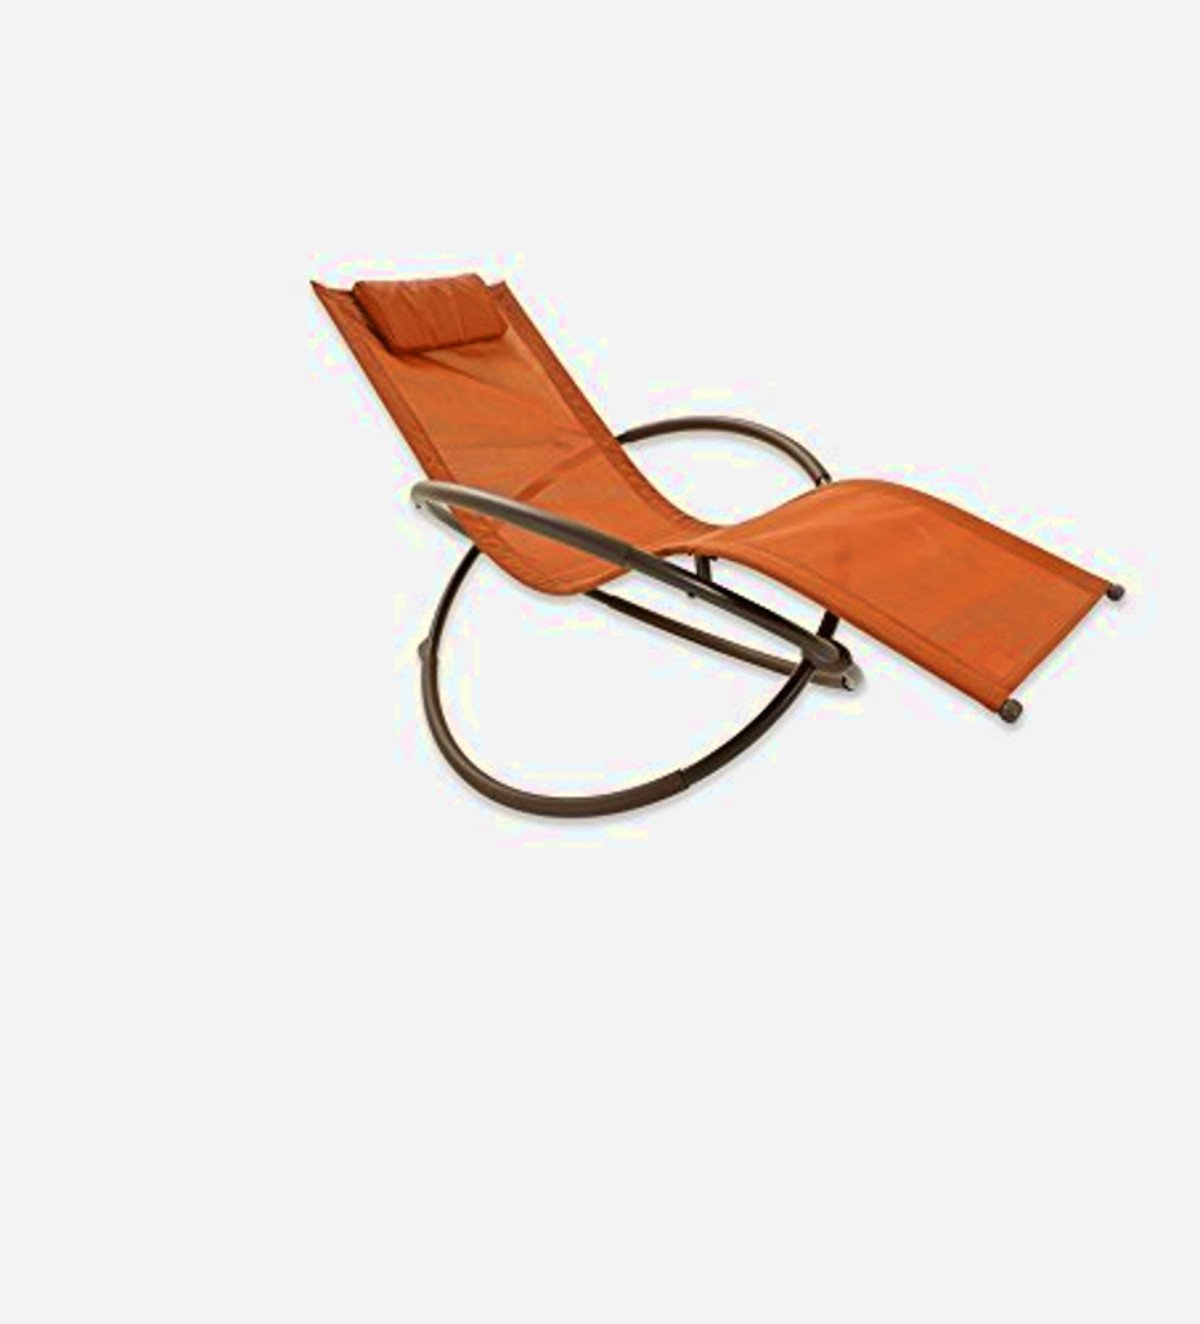 Orbit Lounge Chair, Orange Color,Innovative Shape, Steel And PVC Fabric Material, Durable And High Resistant Construction, Patio, An Attractive And Modern Design, Portable,Lounge, Easy Setup & E-Book.